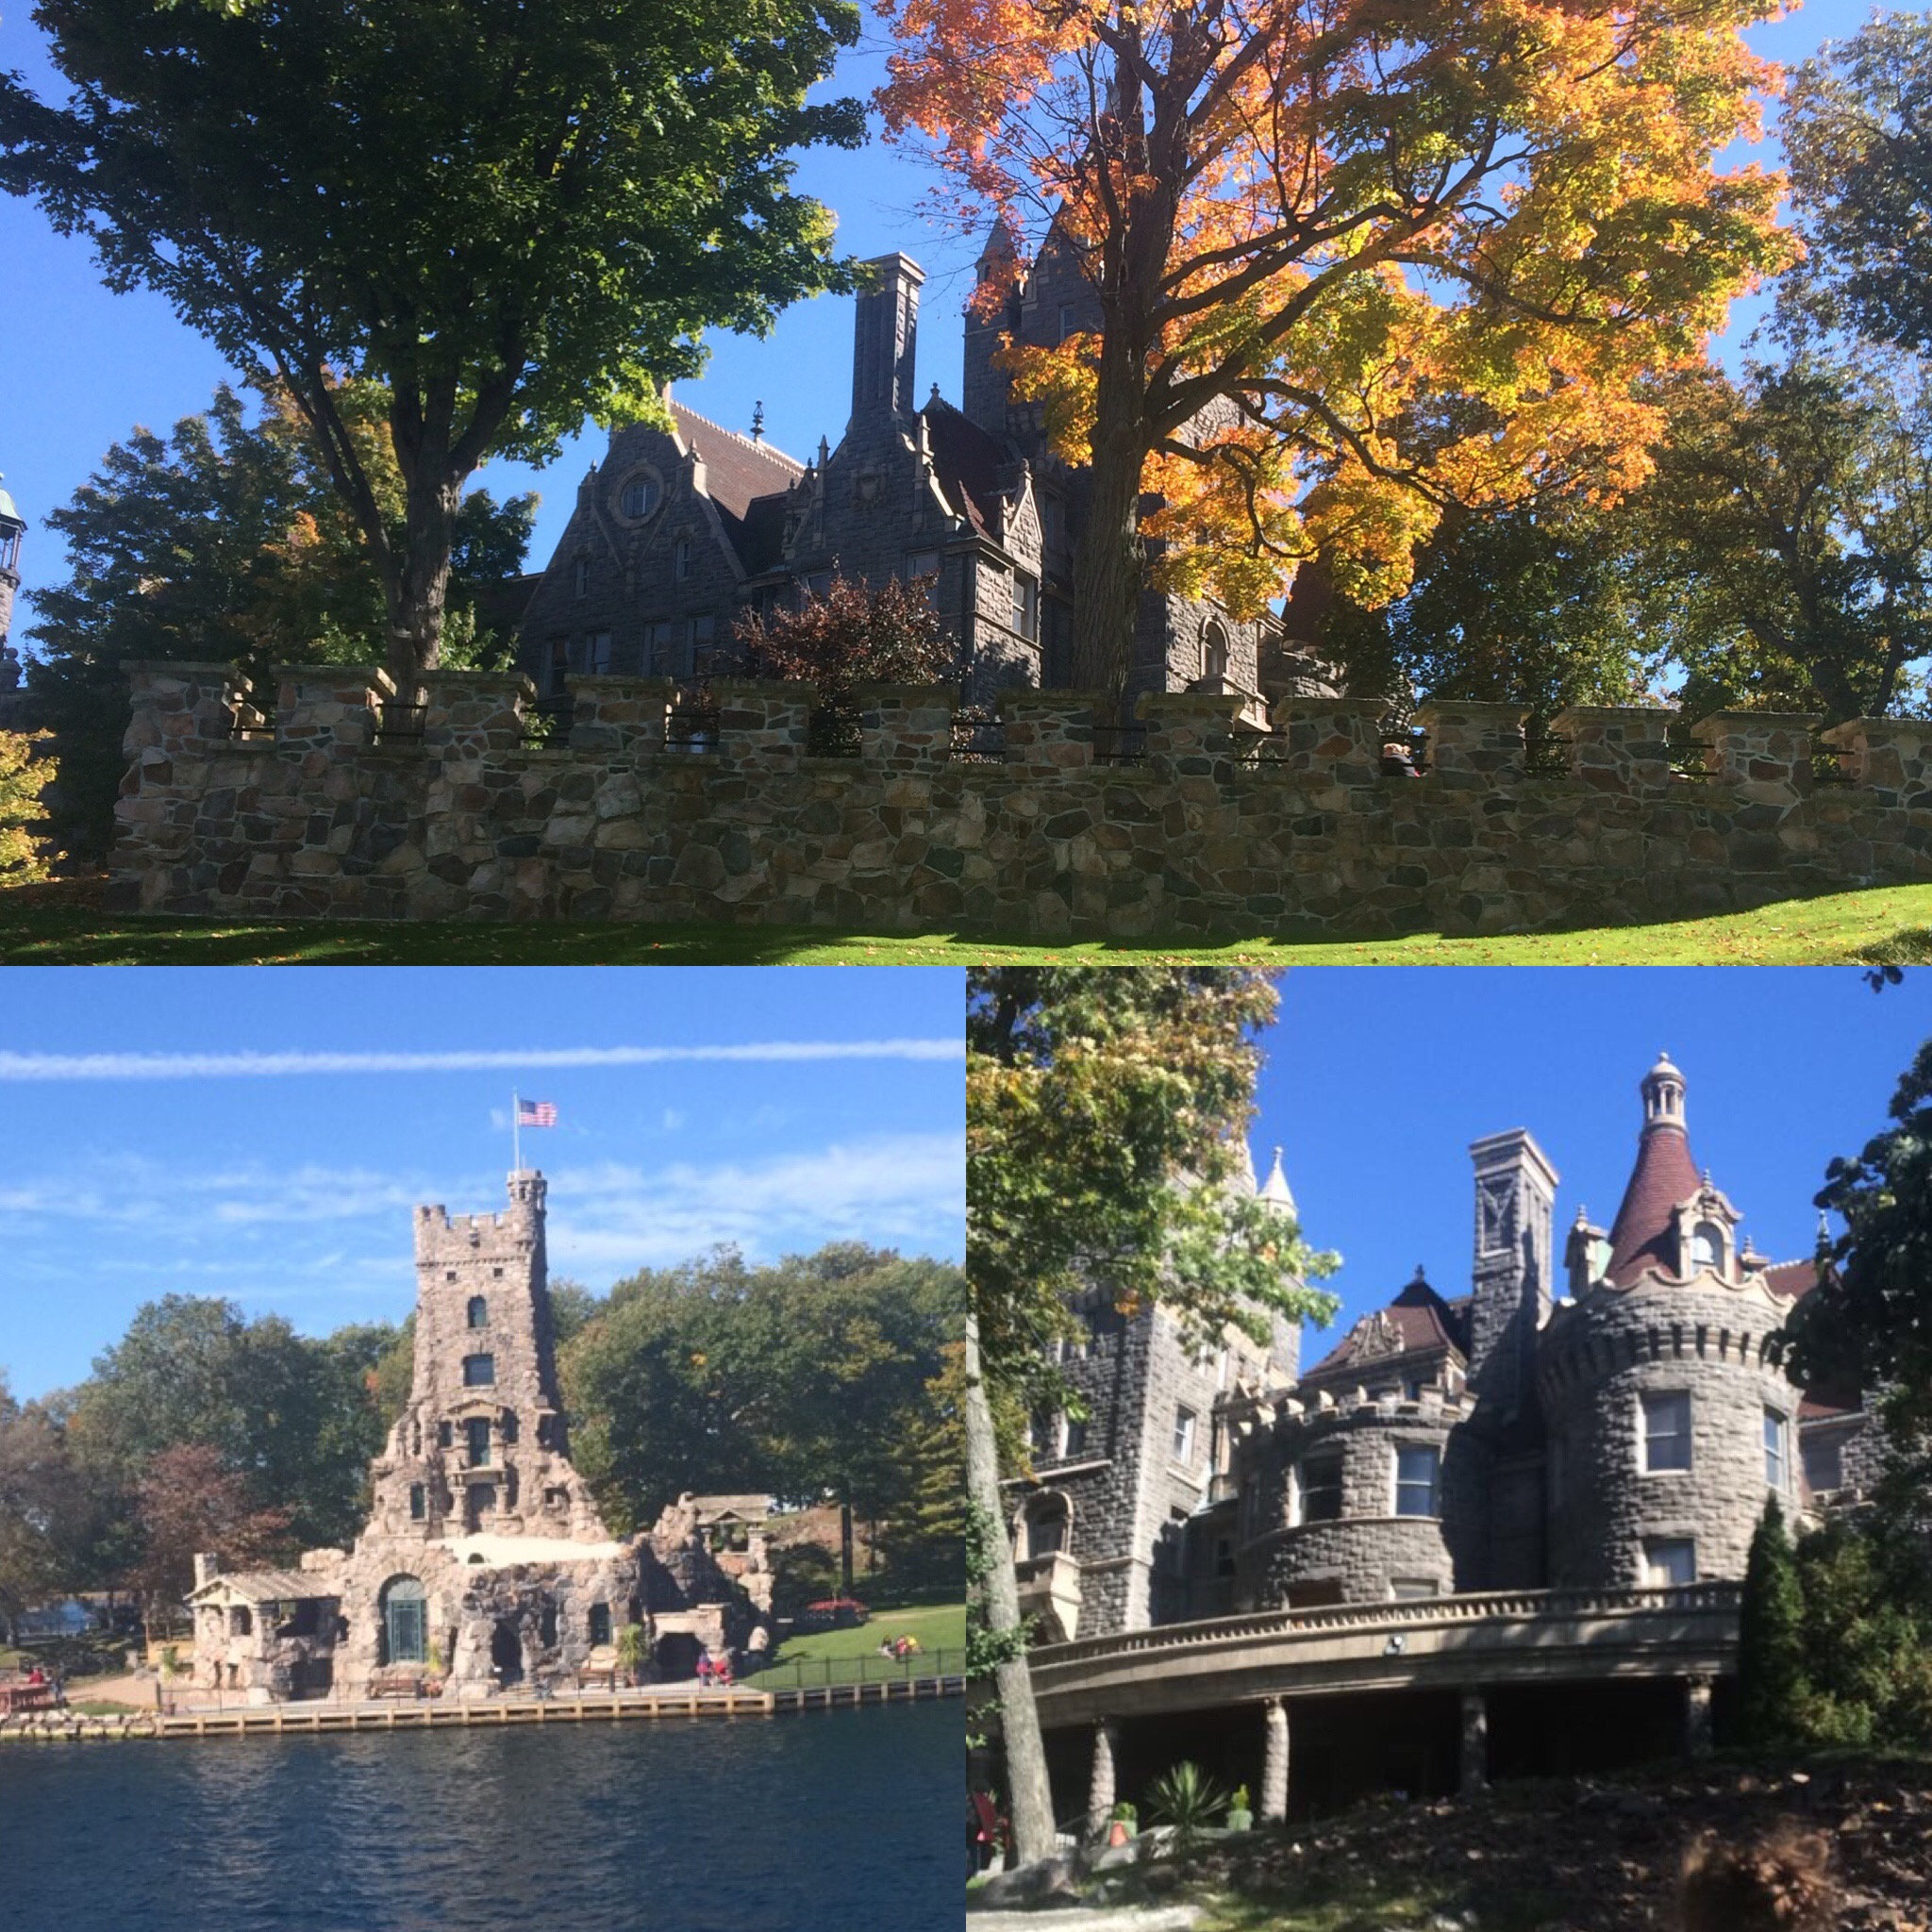 Alster Tower / Boldt Castle